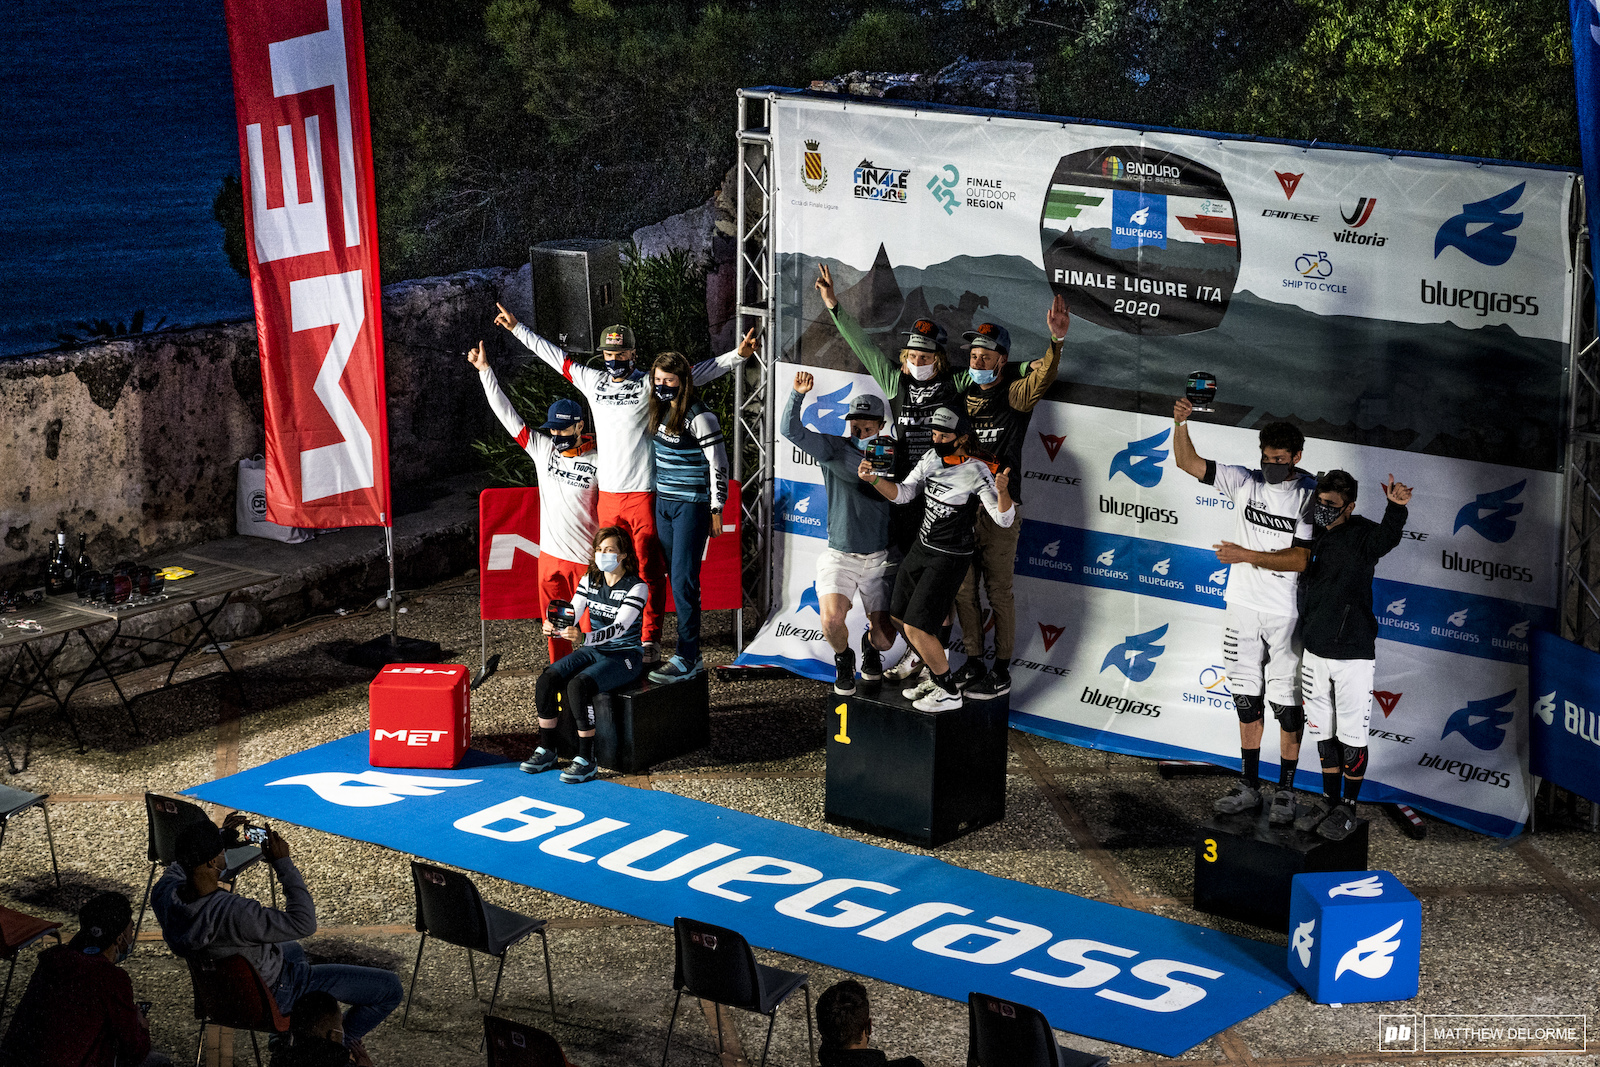 Top teams in Finale Ligure Pivot Factory Trek Factory and Canyon Collective.